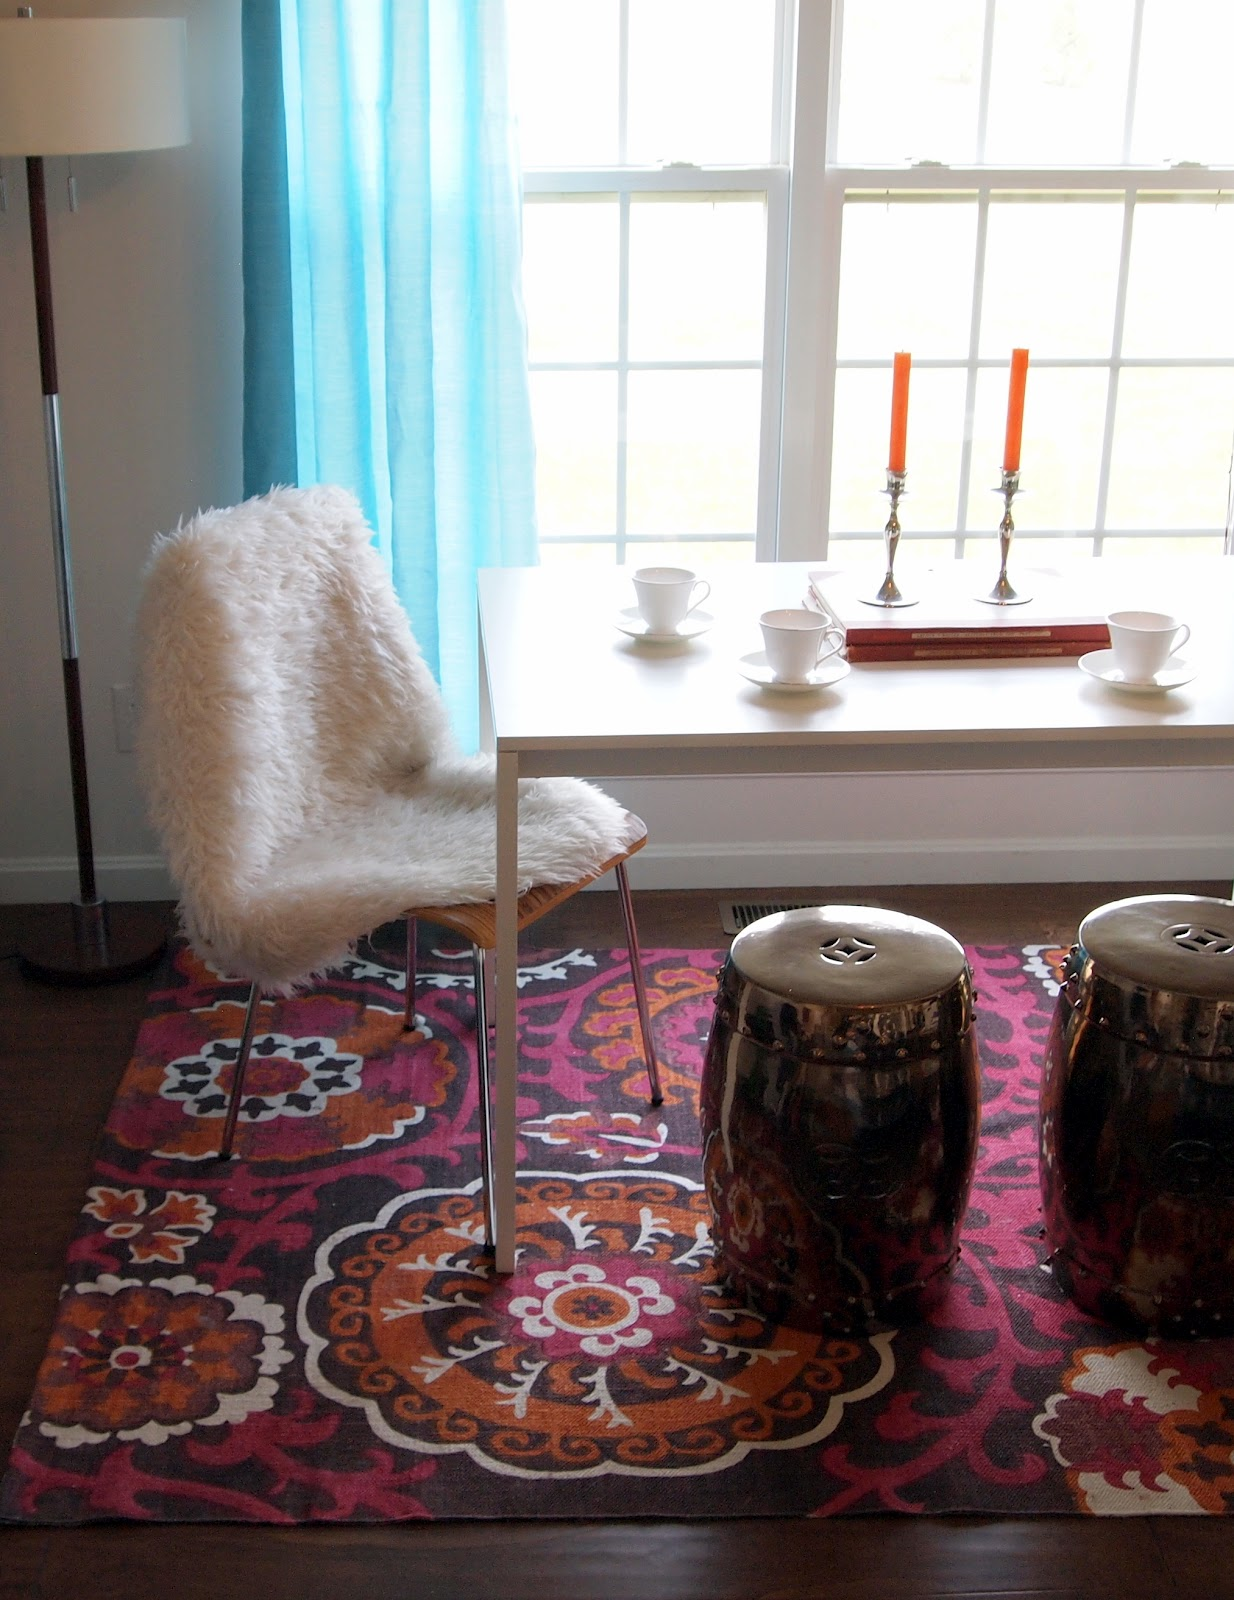 To Find The Right Rug For Foyers And Dining Rooms I Will Include Hot Trends Too If You Miss Show Here Is My Yes List Of What Look